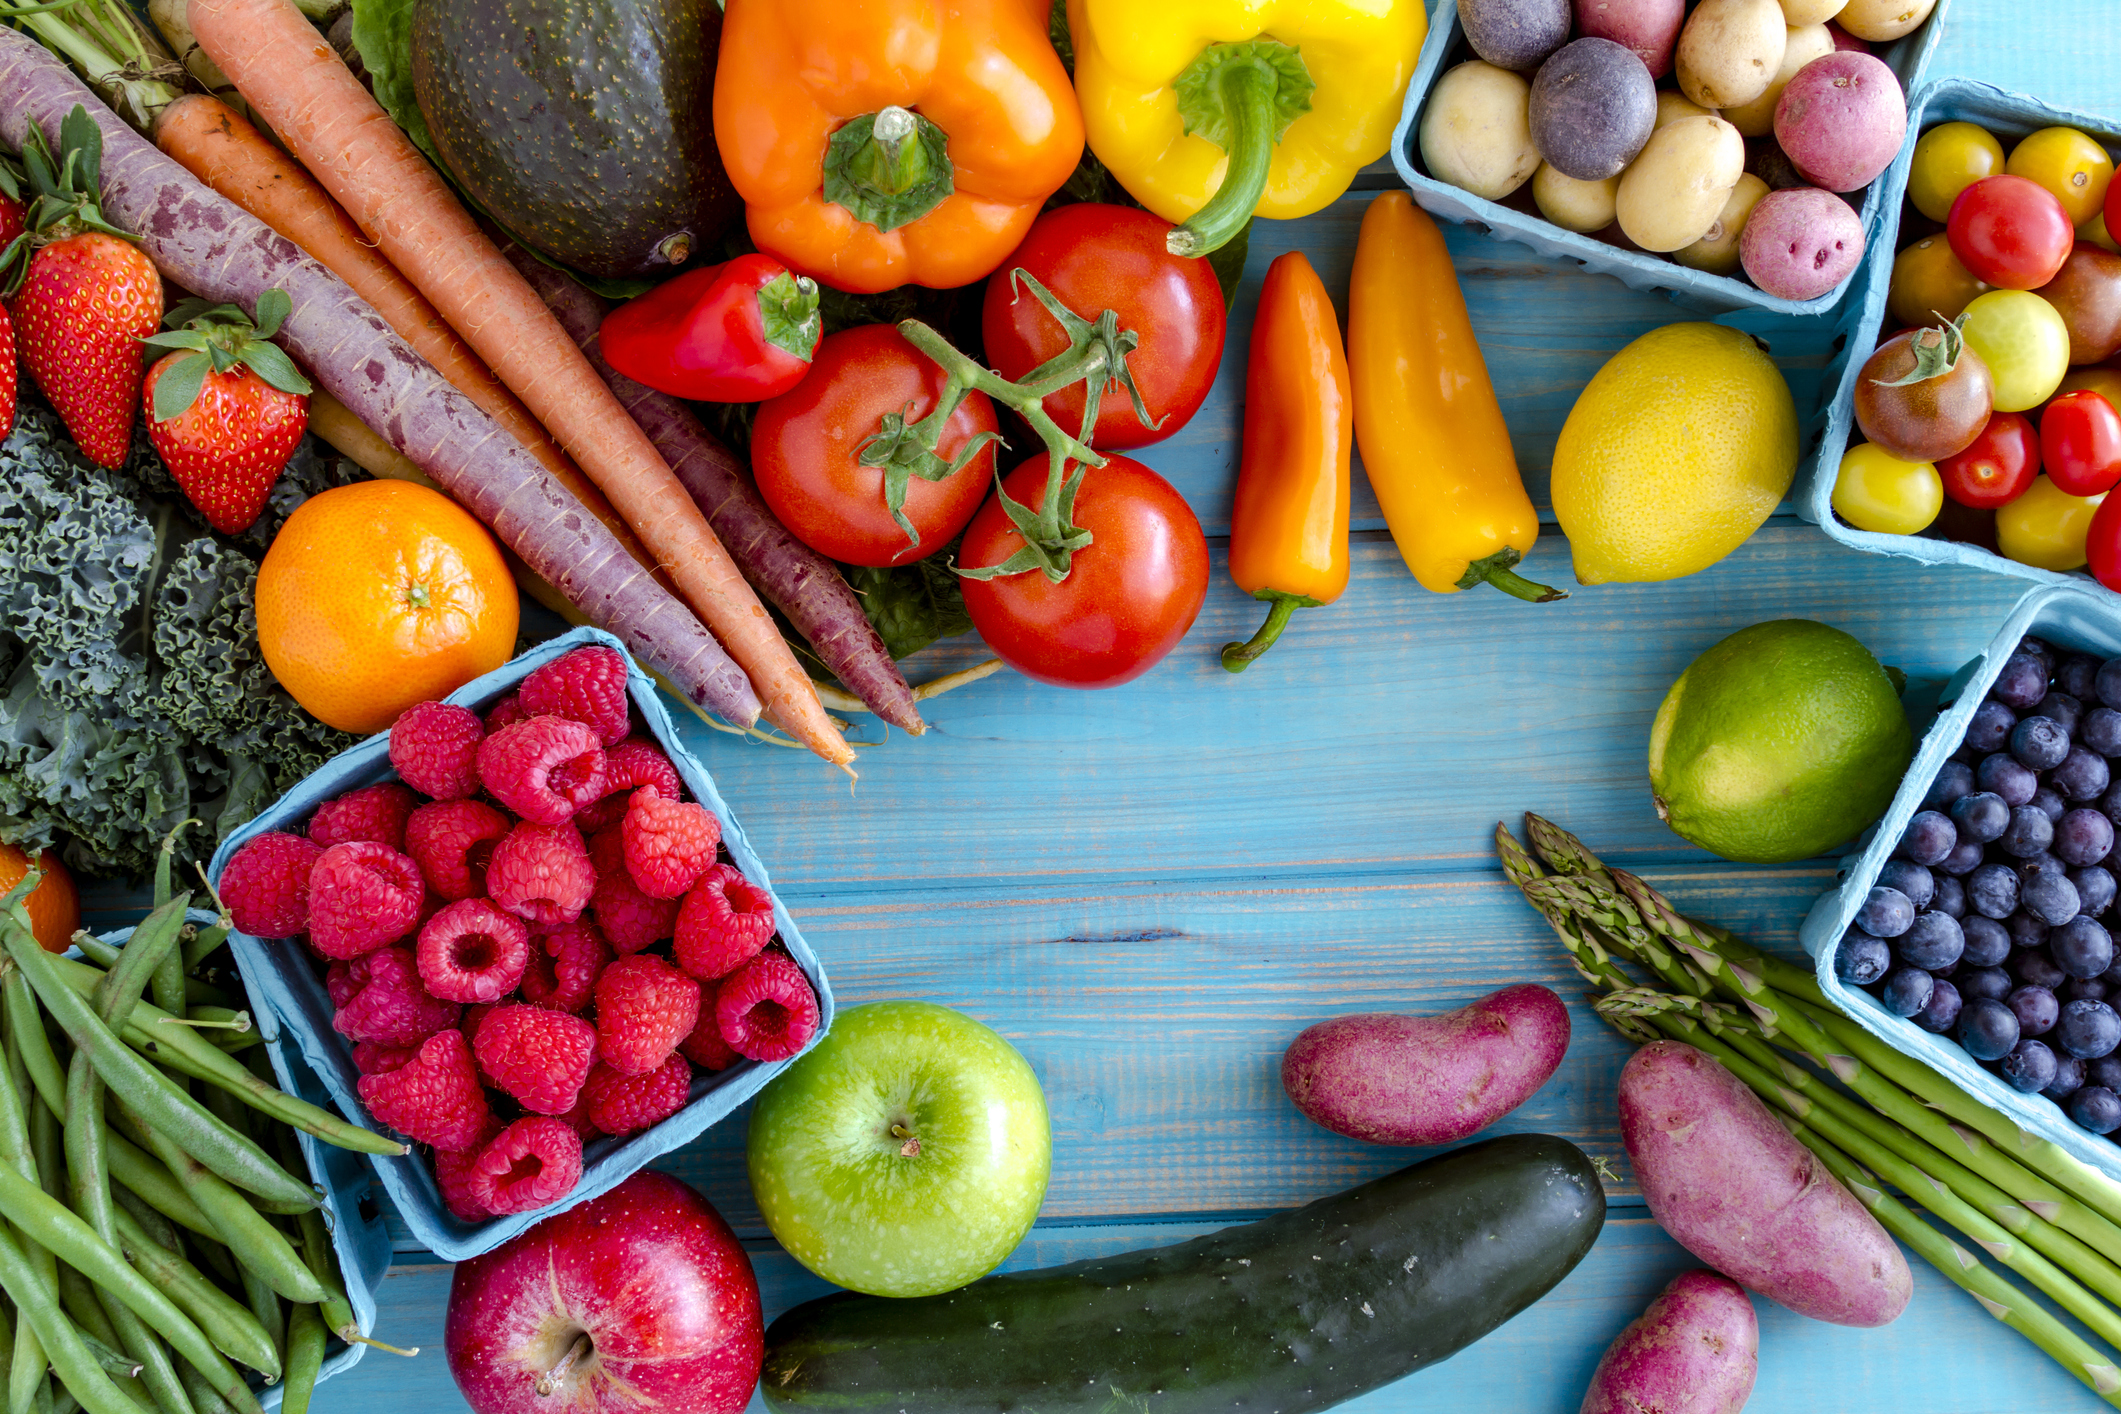 """""""Assorted Fruits and Vegetables""""  by  tvirbickis  under iStock's Standard License"""